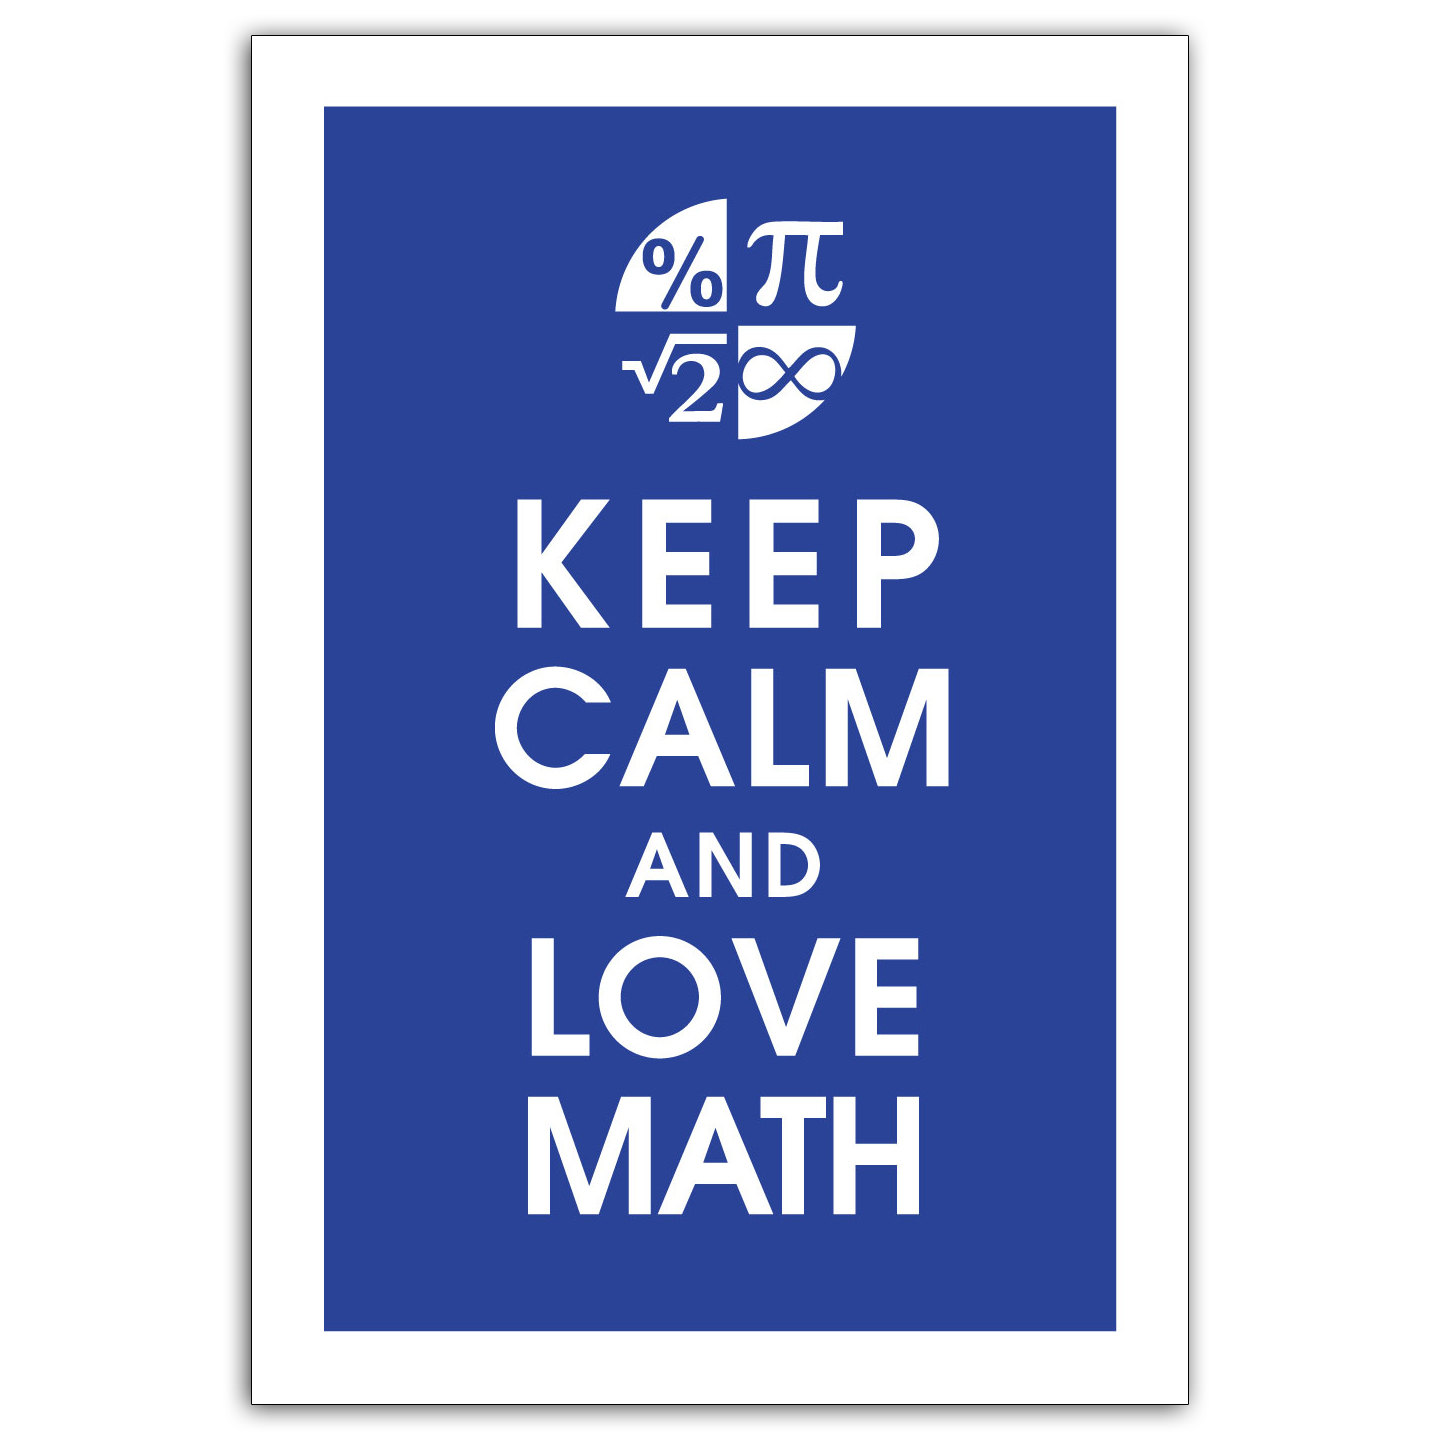 1440x1440 Keep Calm And Love Math 13x19 Art Print Featured In American